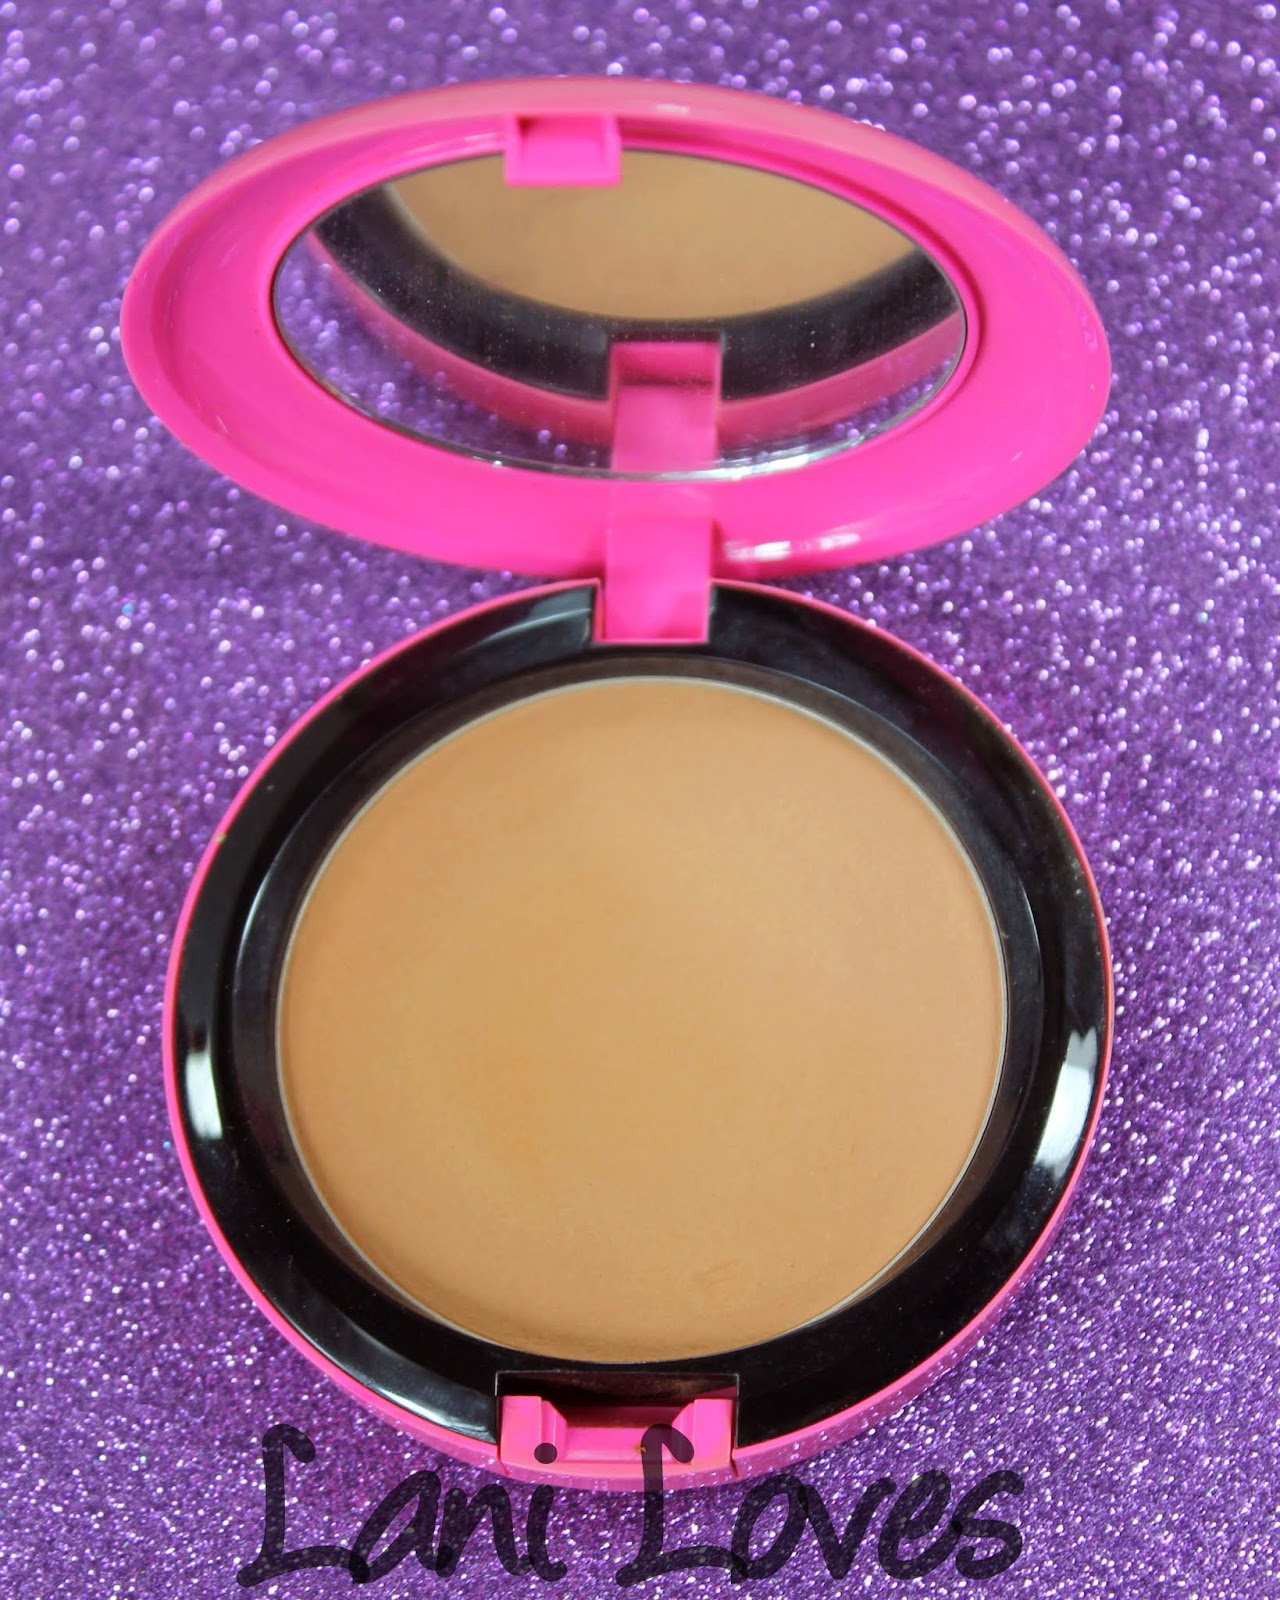 MAC Monday: MAC for Heatherette - Smooth Harmony Beauty Powder Swatches & Review